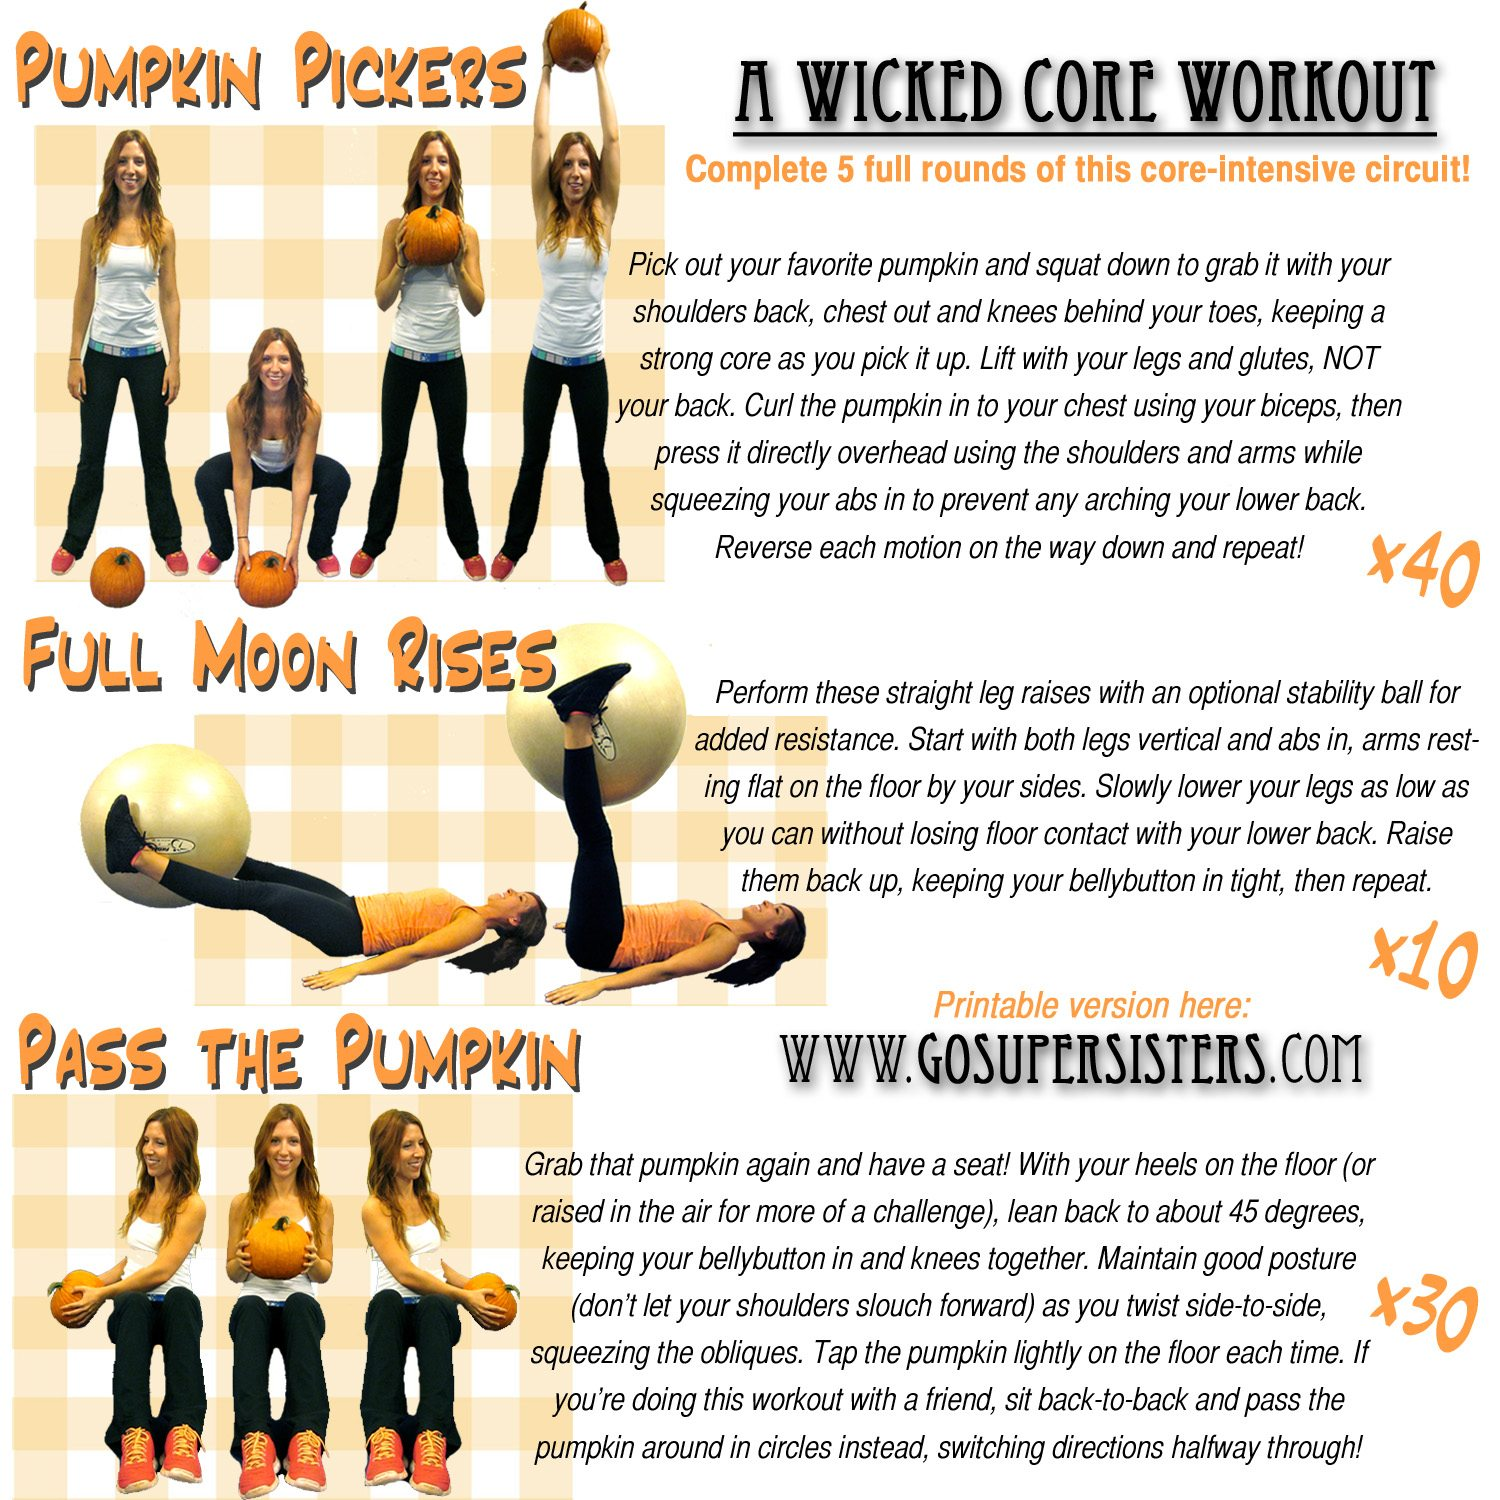 A Wicked Core Workout!